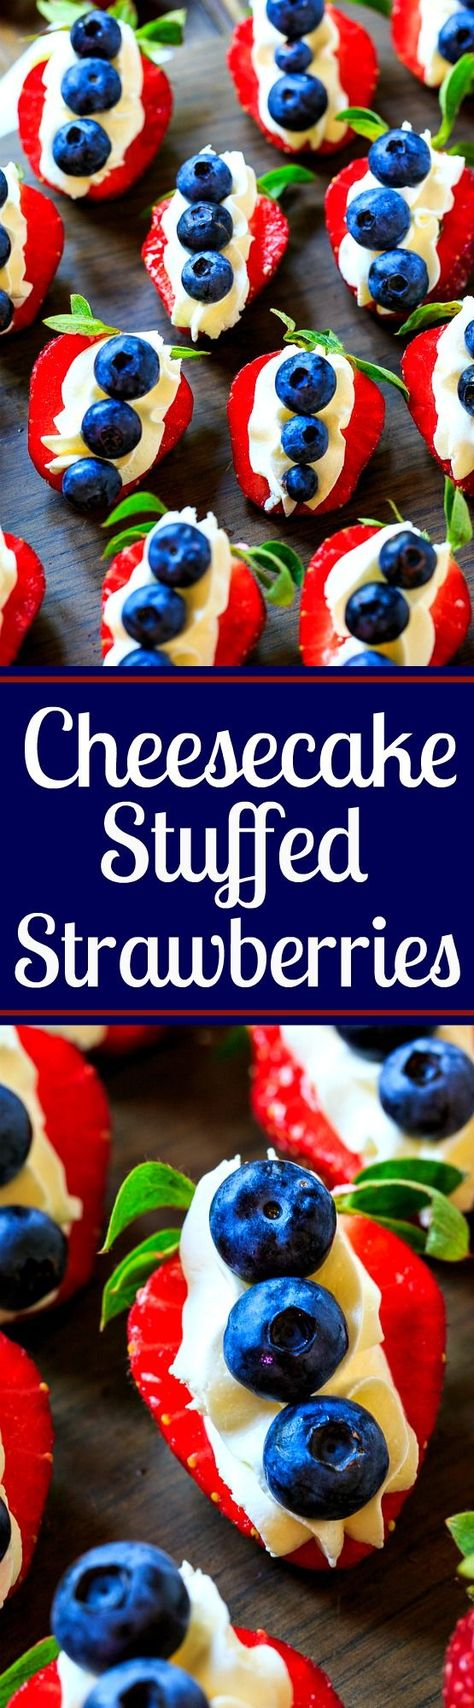 Red, White, and Blue Cheesecake Stuffed Strawberries - a great 4th of July dessert! Easy to make-ahead. : spicysouthernkitchen